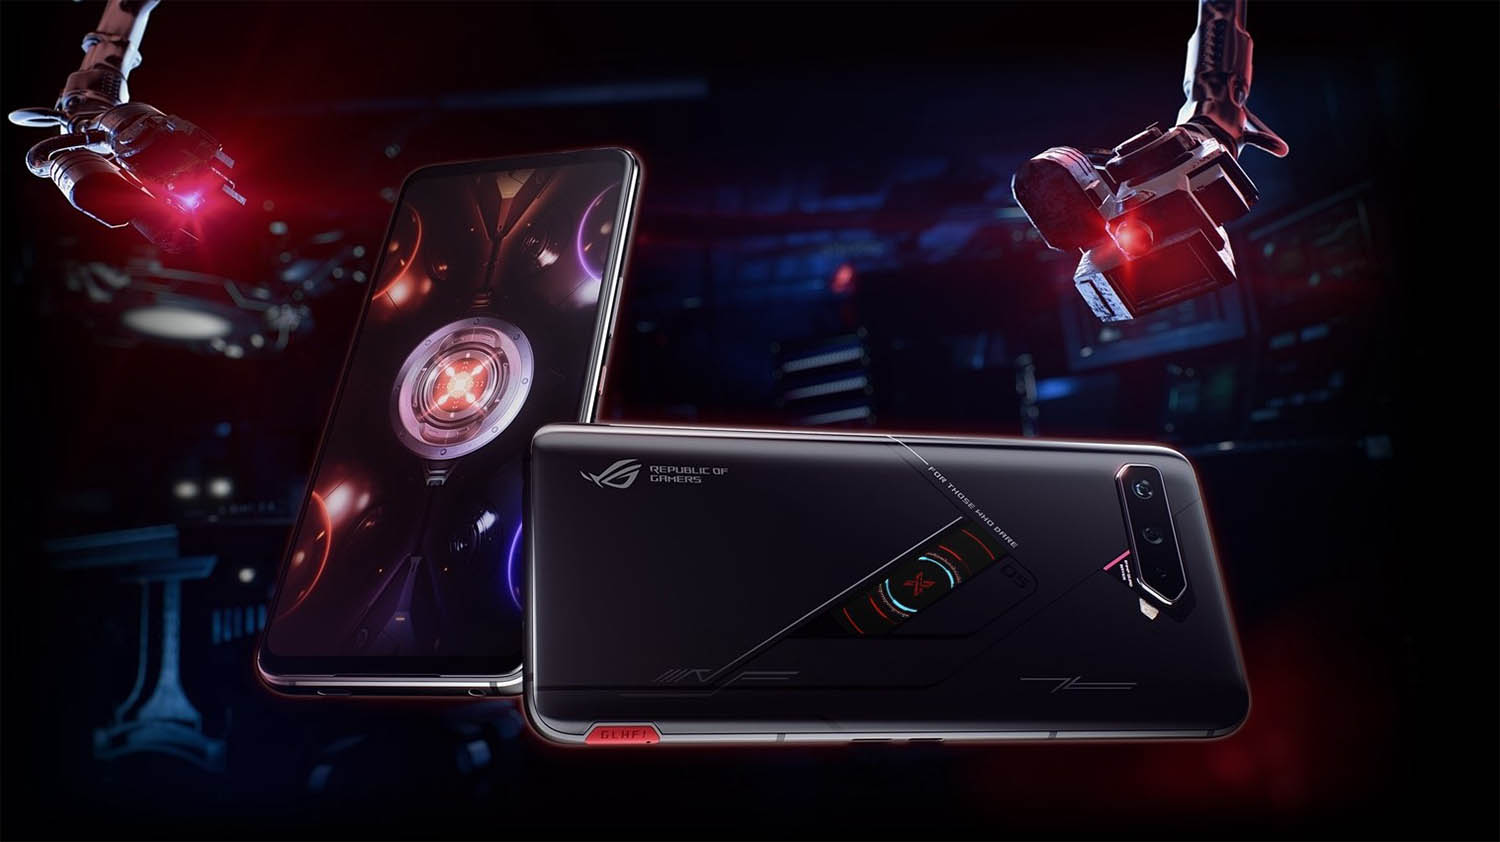 ASUS Announces ROG Phone 5s, ROG Phone 5s Pro With Snapdragon 888 Plus, Higher Touch Response Rate, More